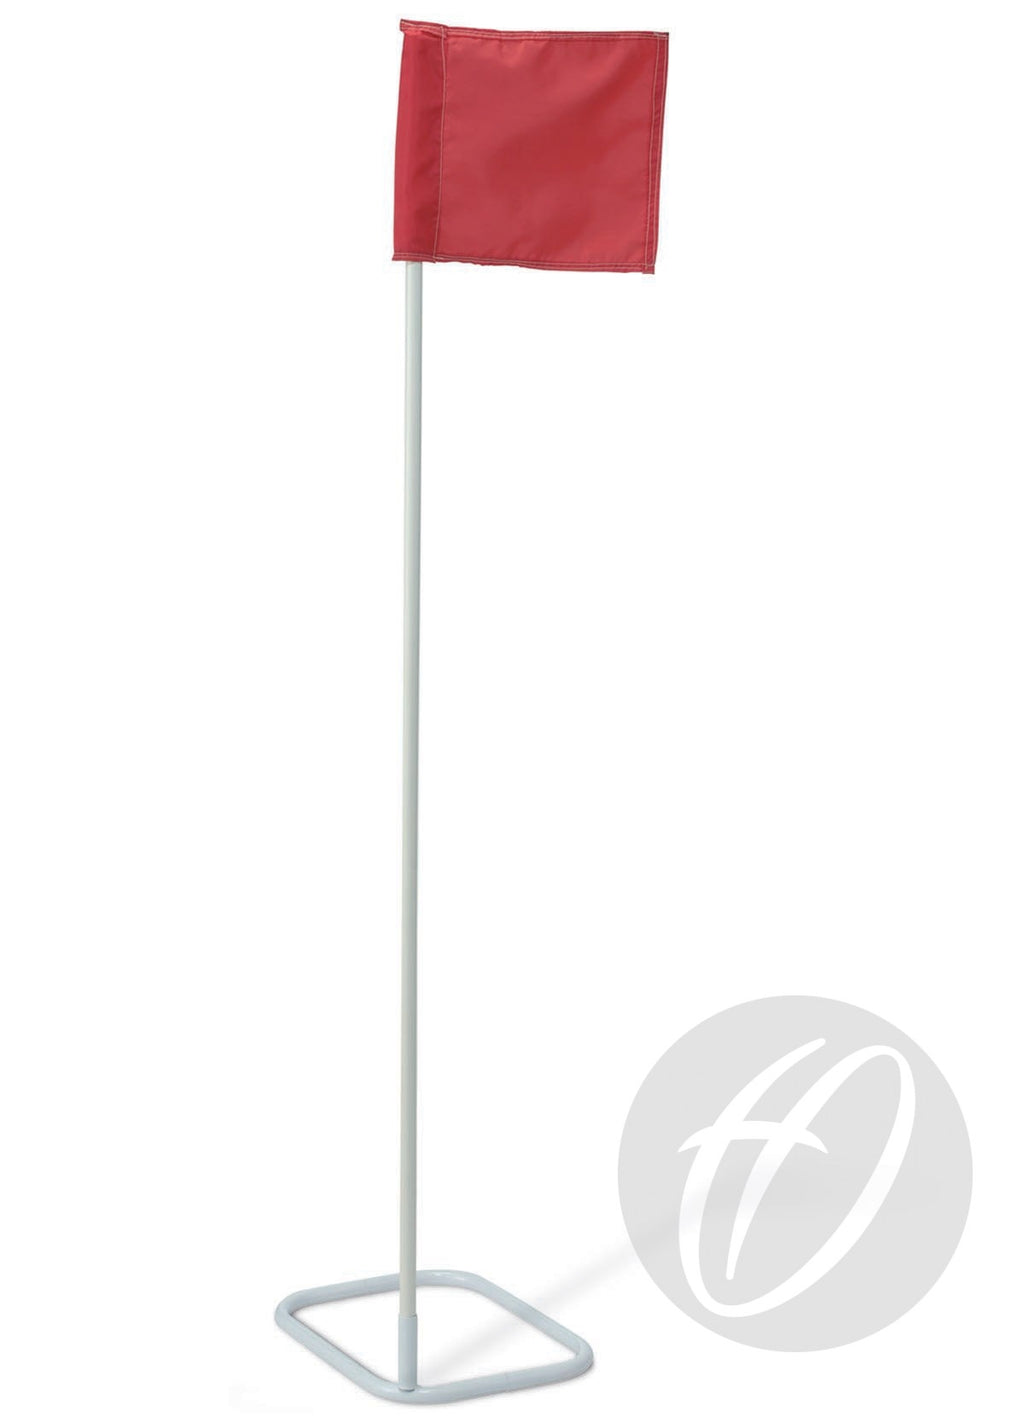 Flag Pole Flexibase